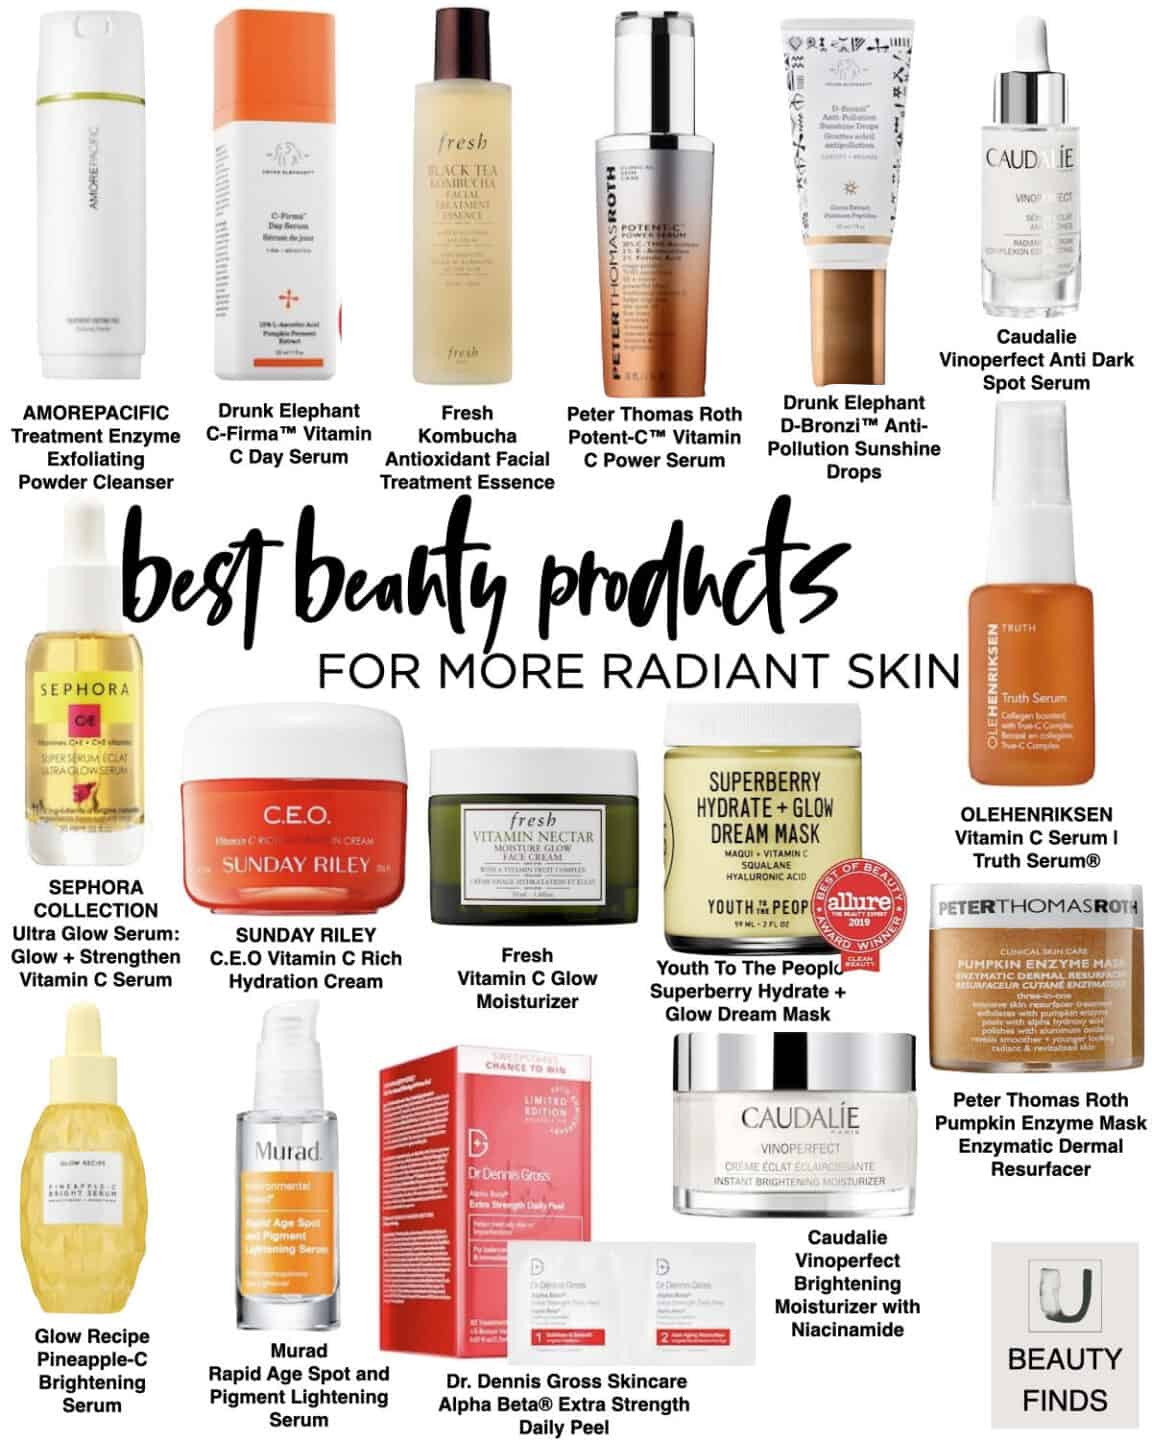 Best Beauty Products for More Radiant Skin